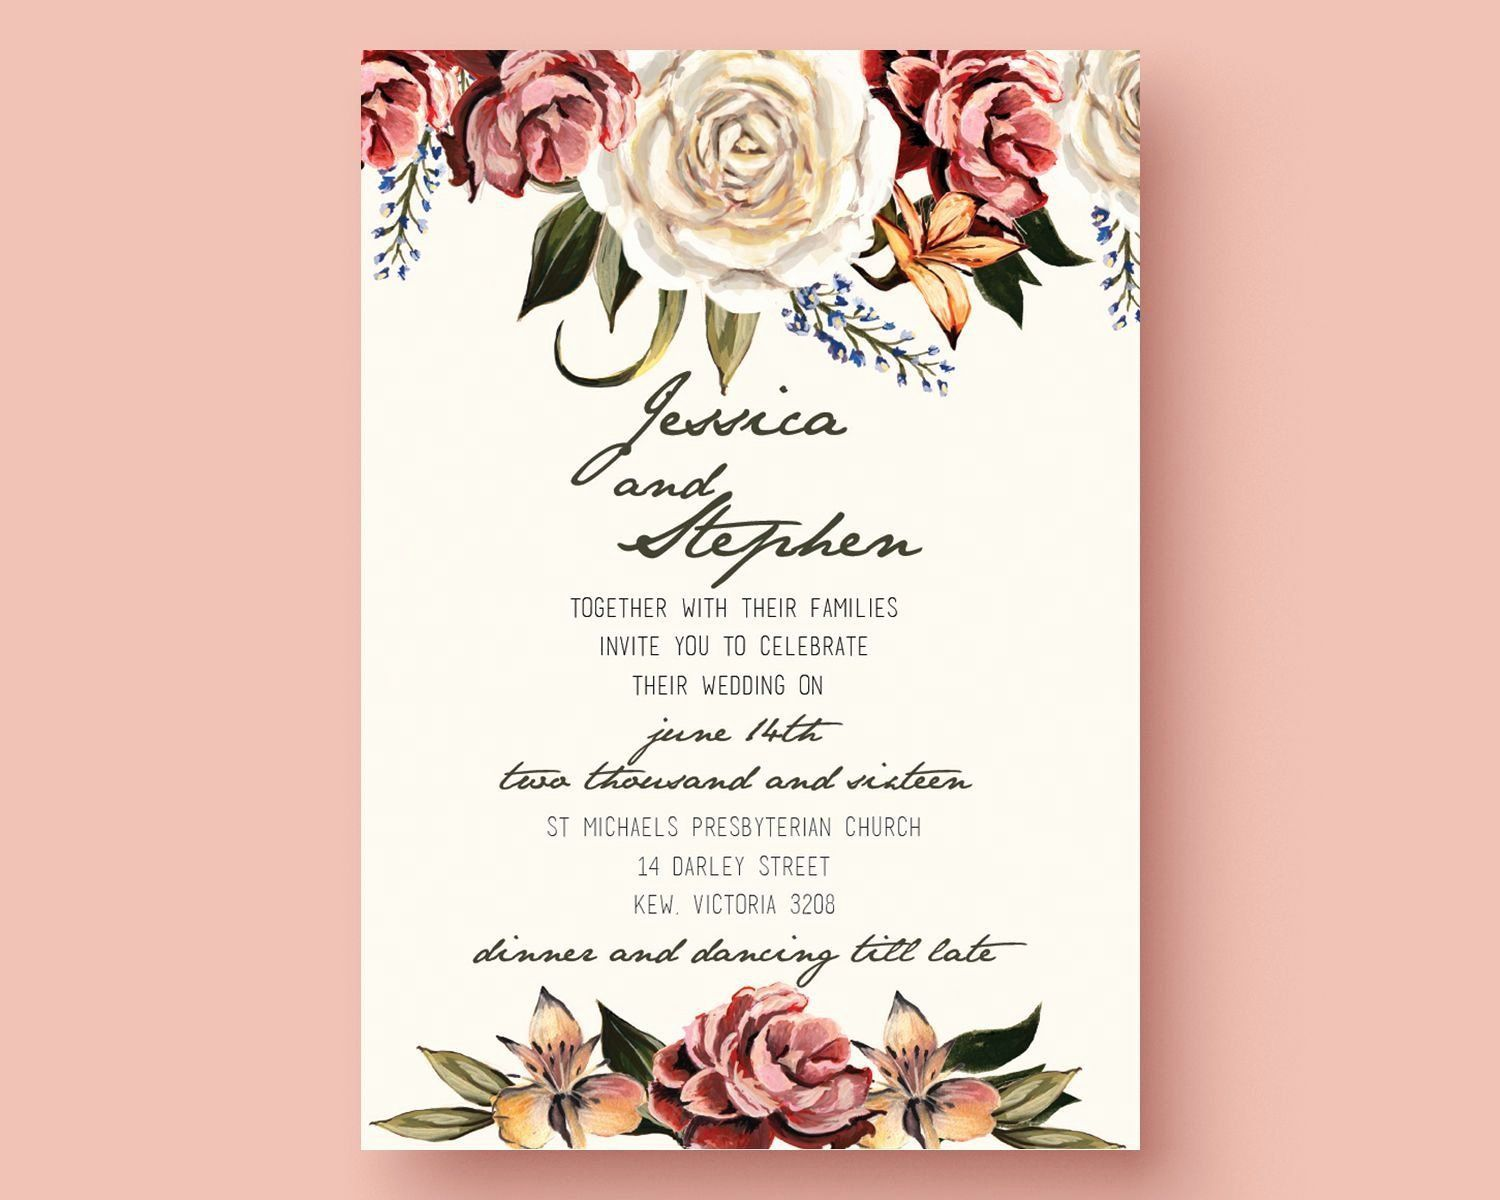 001 Unique Download Free Wedding Invitation Card Template Inspiration  Marriage Format PsdFull